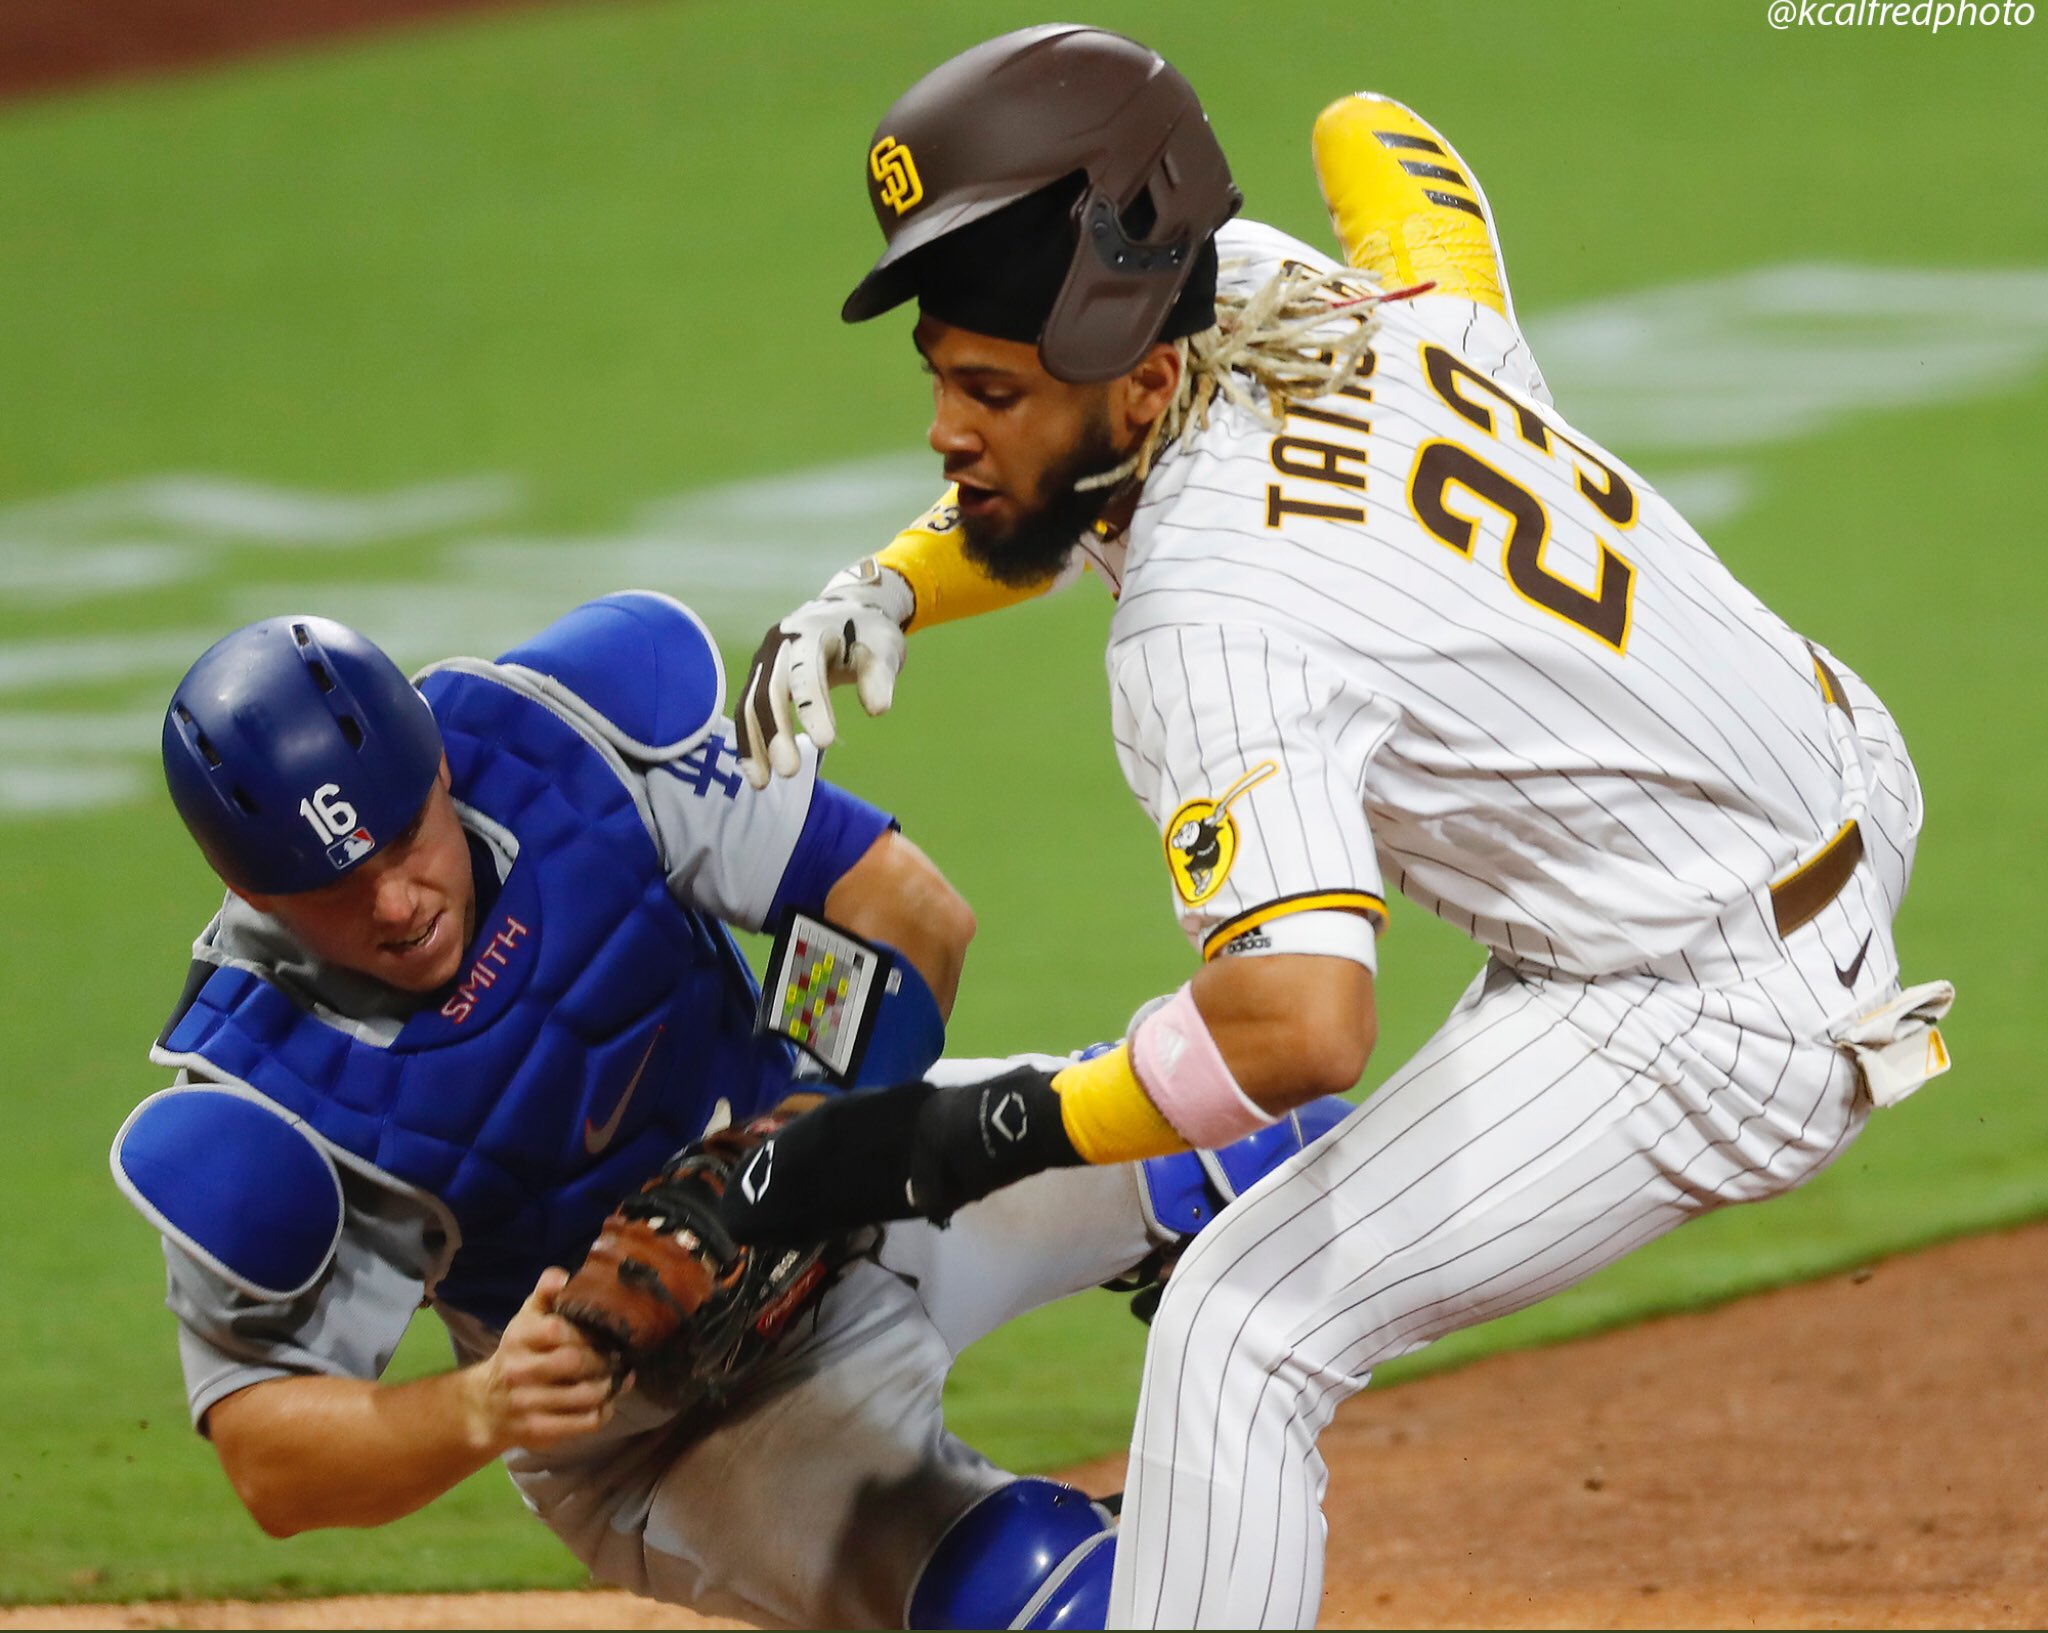 Rookie Cronenworth shines as Padres defeat rival Dodgers 5-4 in opener